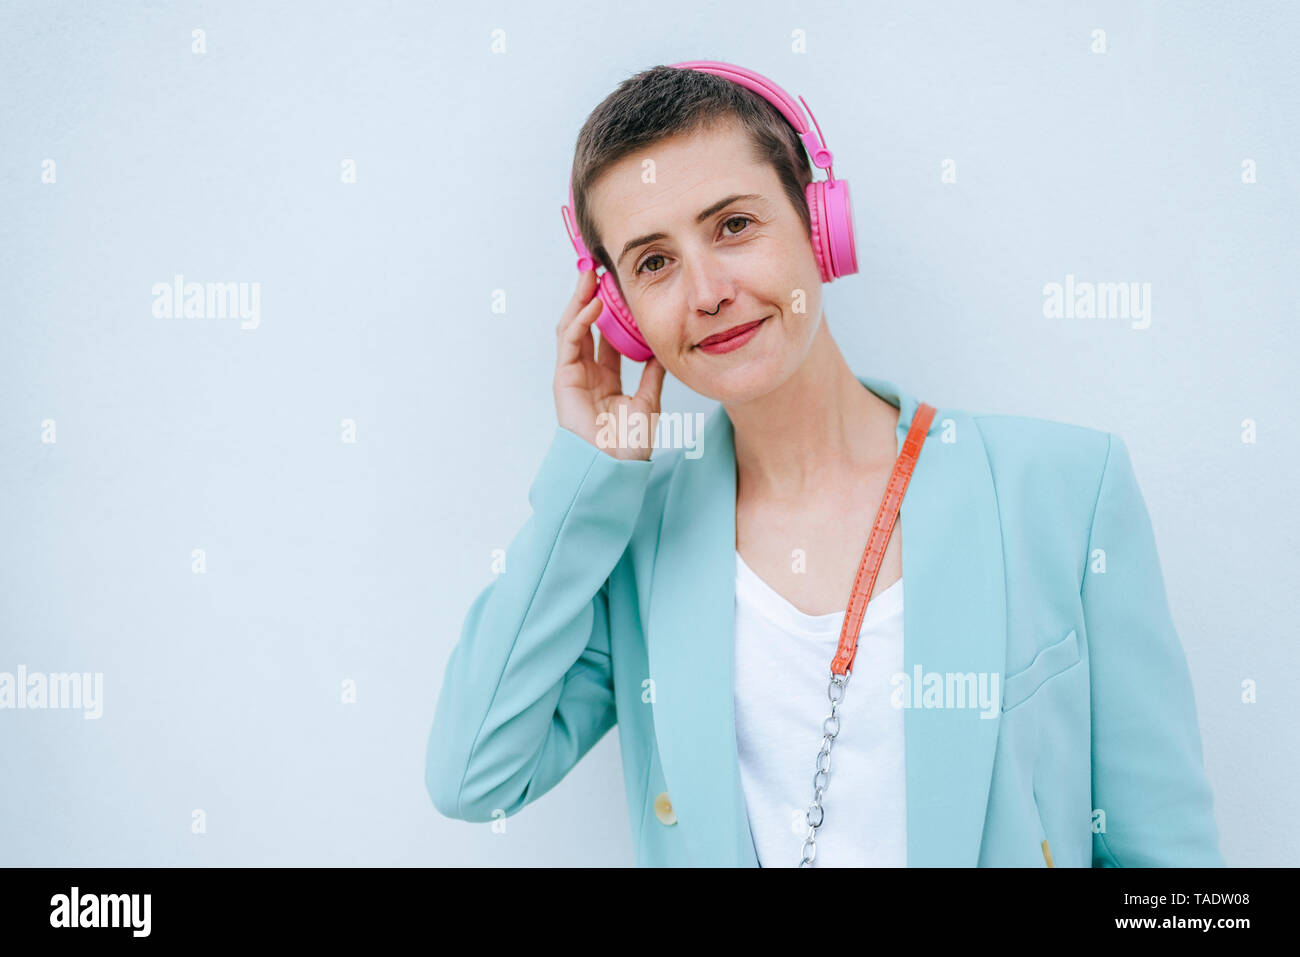 Woman dressed in jacket listening to music, pink headphones - Stock Image